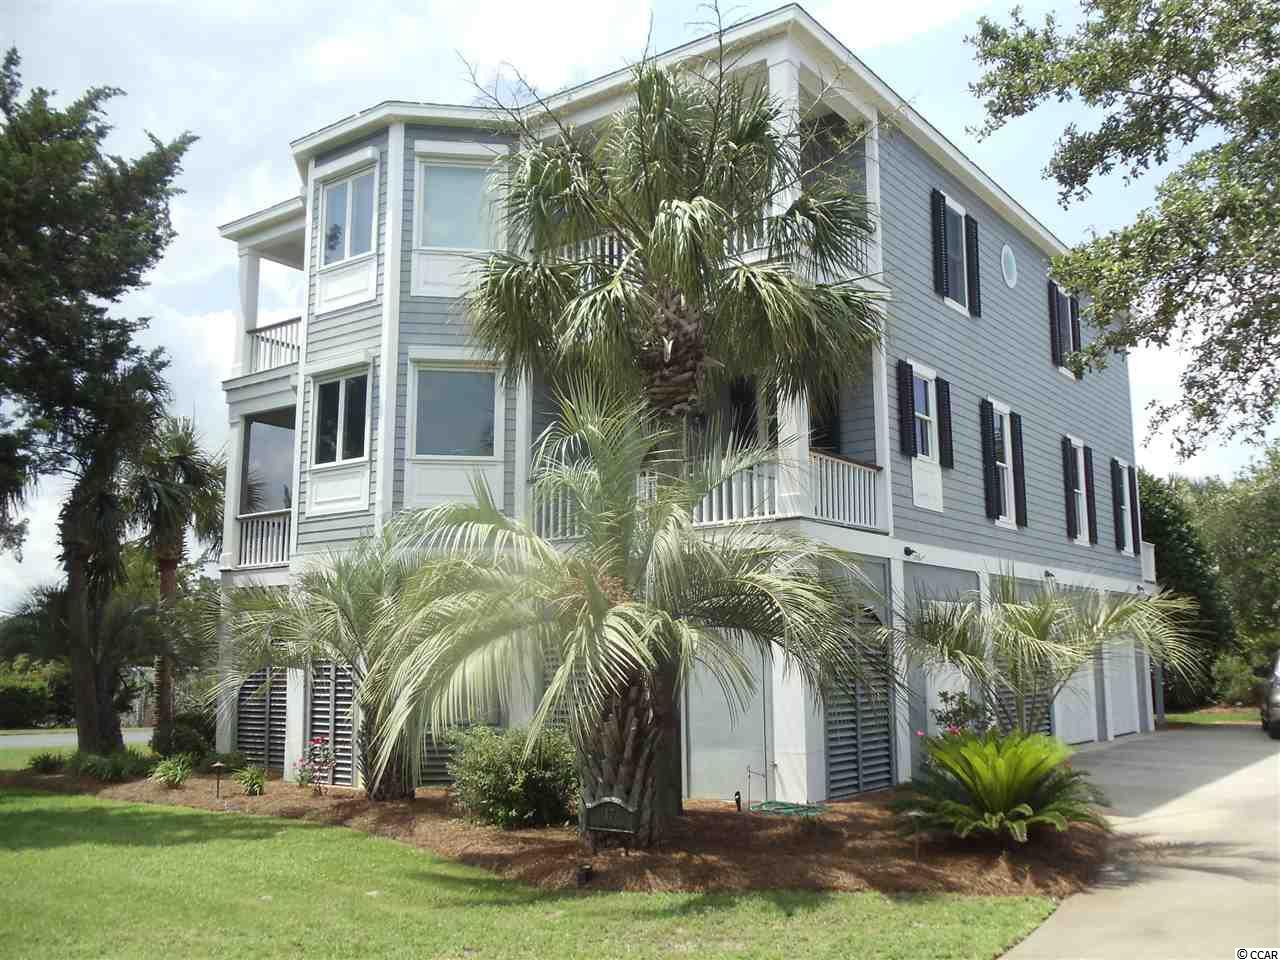 Single Family Home for Sale at 17 Charlestowne Grant 17 Charlestowne Grant Pawleys Island, South Carolina 29585 United States